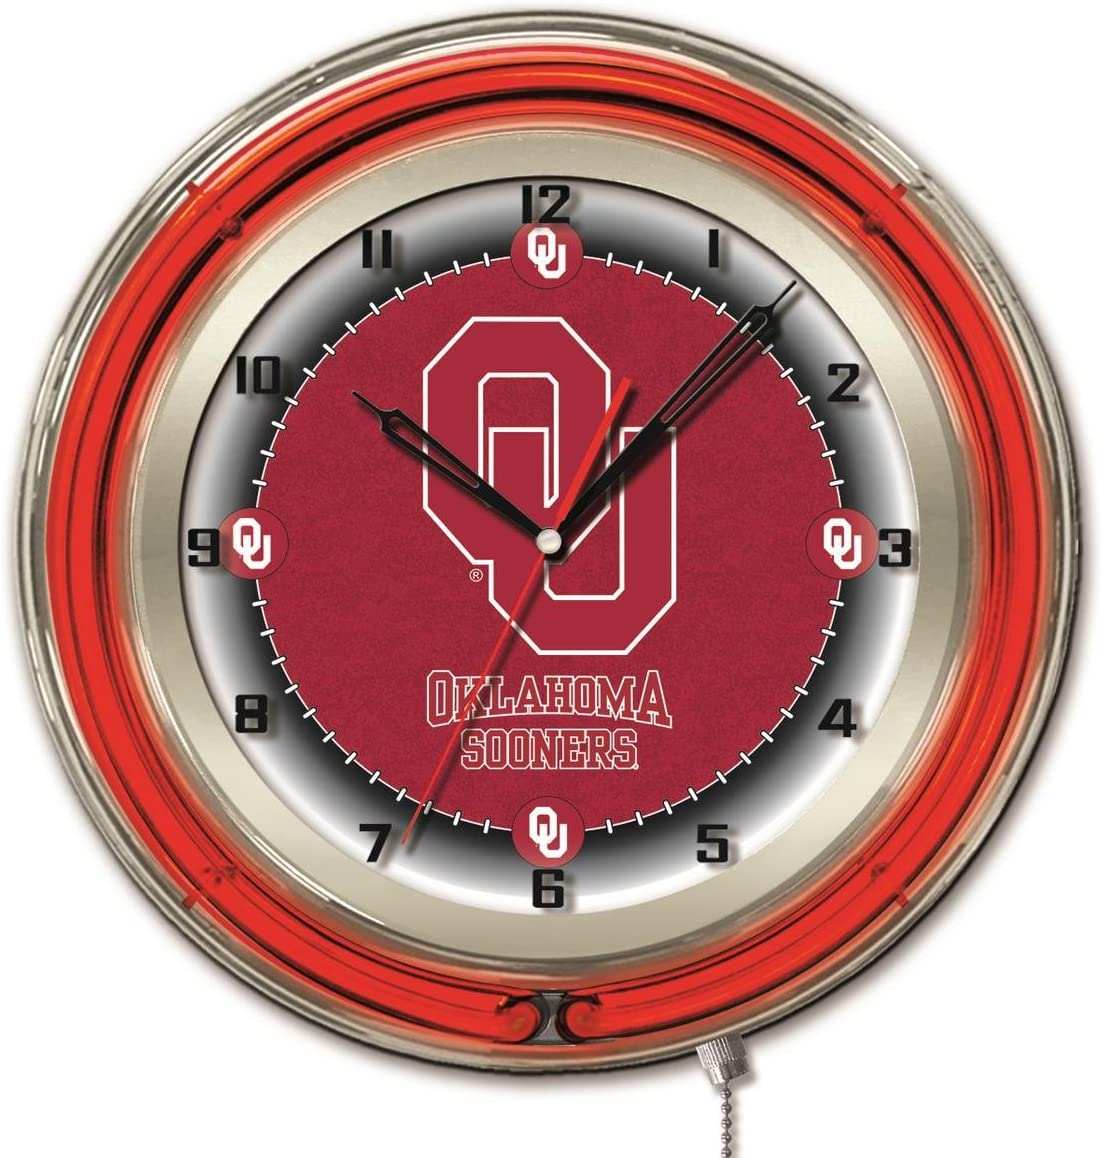 Oklahoma Sooners HBS Neon Red Clock Wall College Powered Battery Ranking Max 75% OFF TOP6